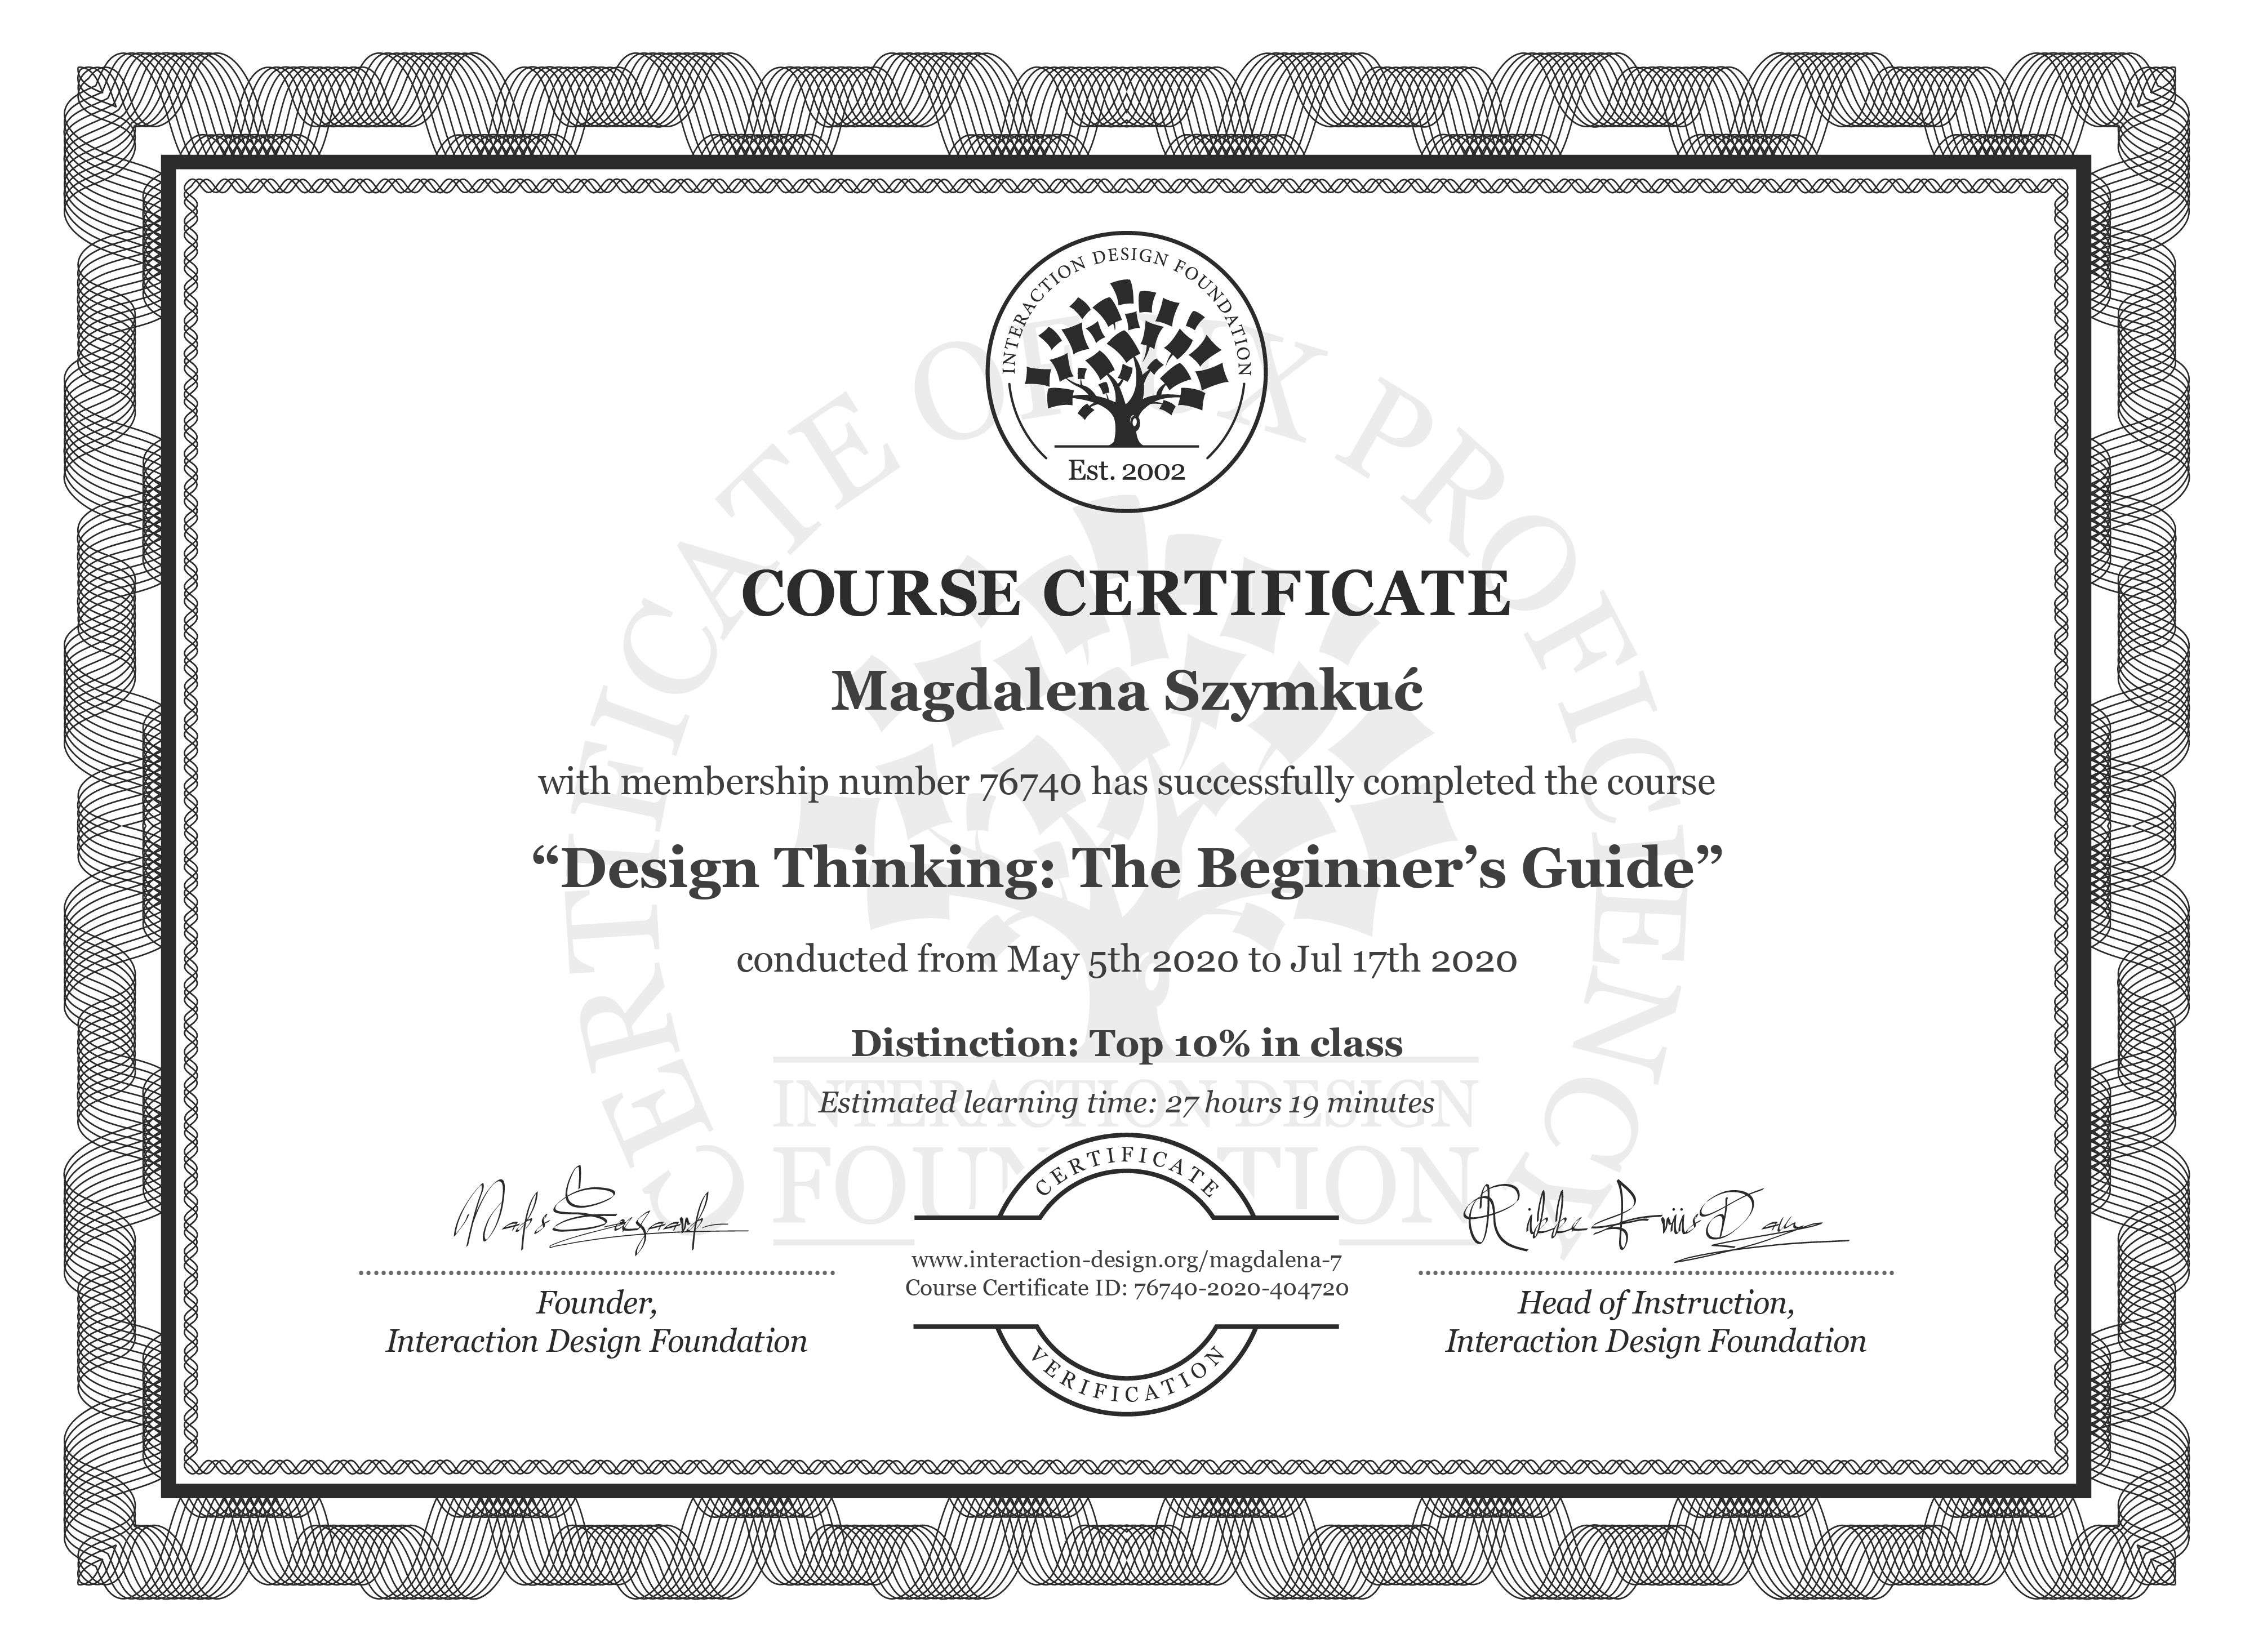 Magdalena Szymkuć's Course Certificate: Design Thinking: The Beginner's Guide